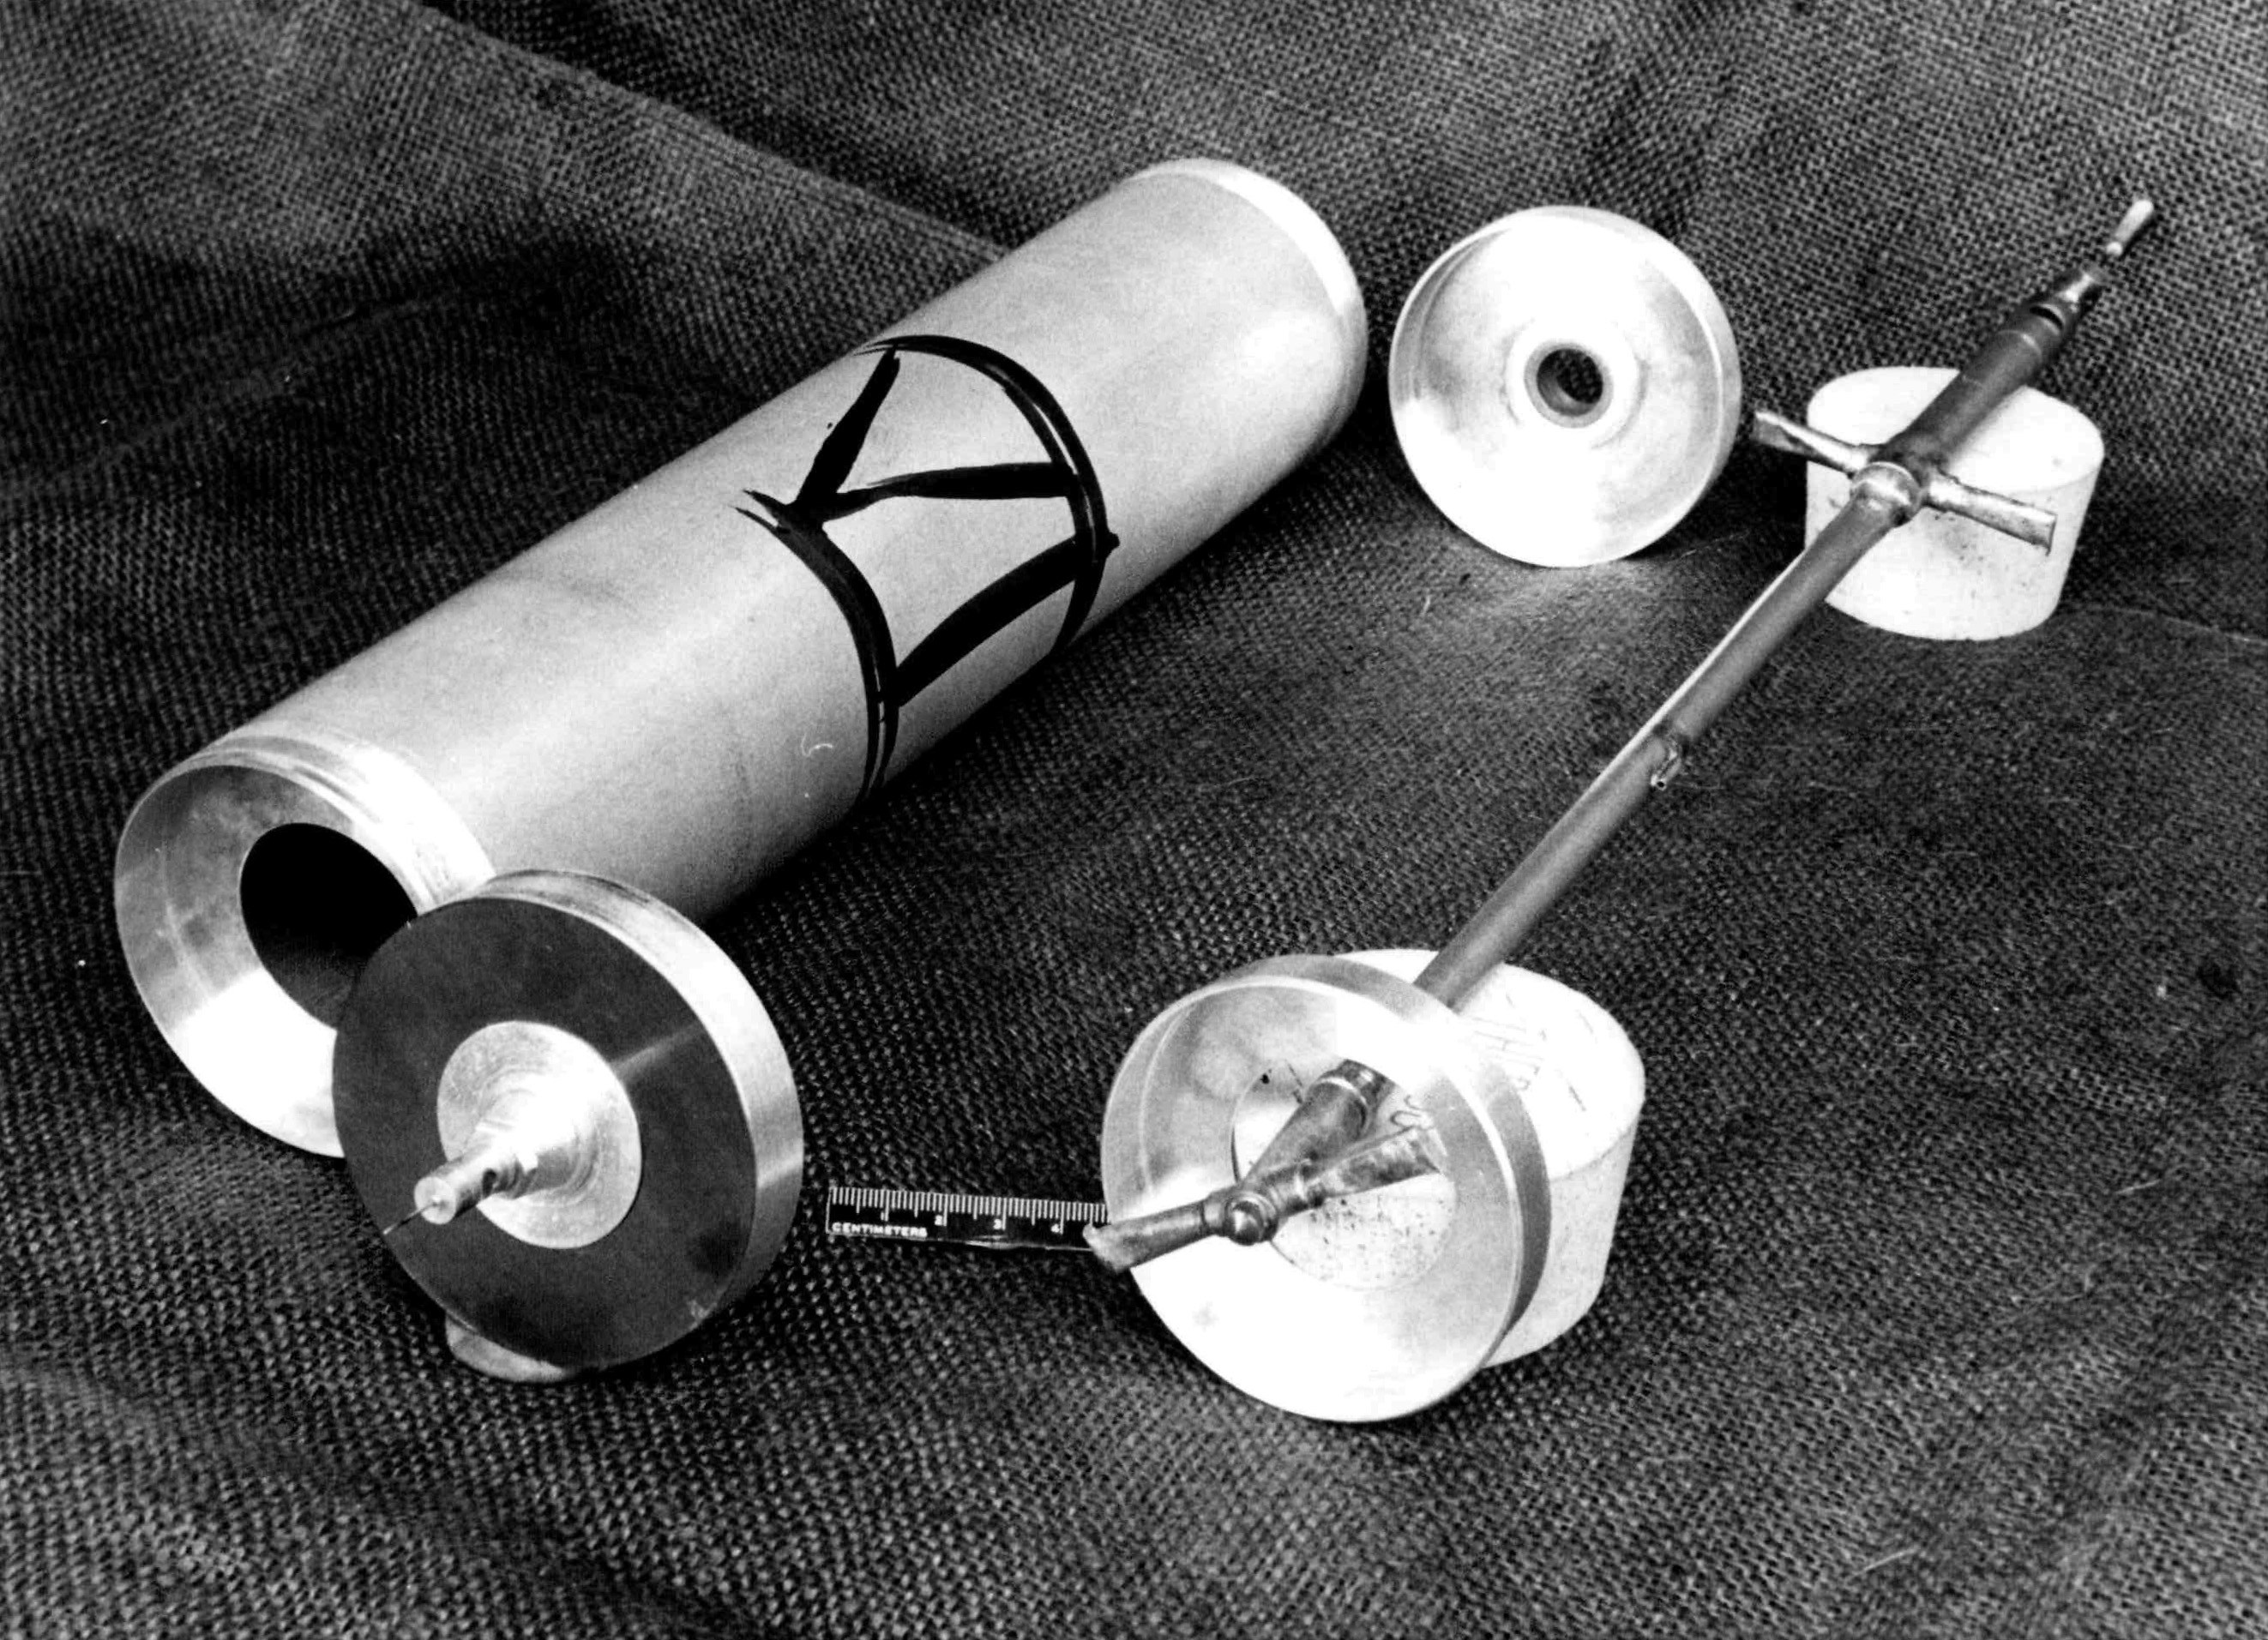 1959-Zippe-centrifuge-disassembled